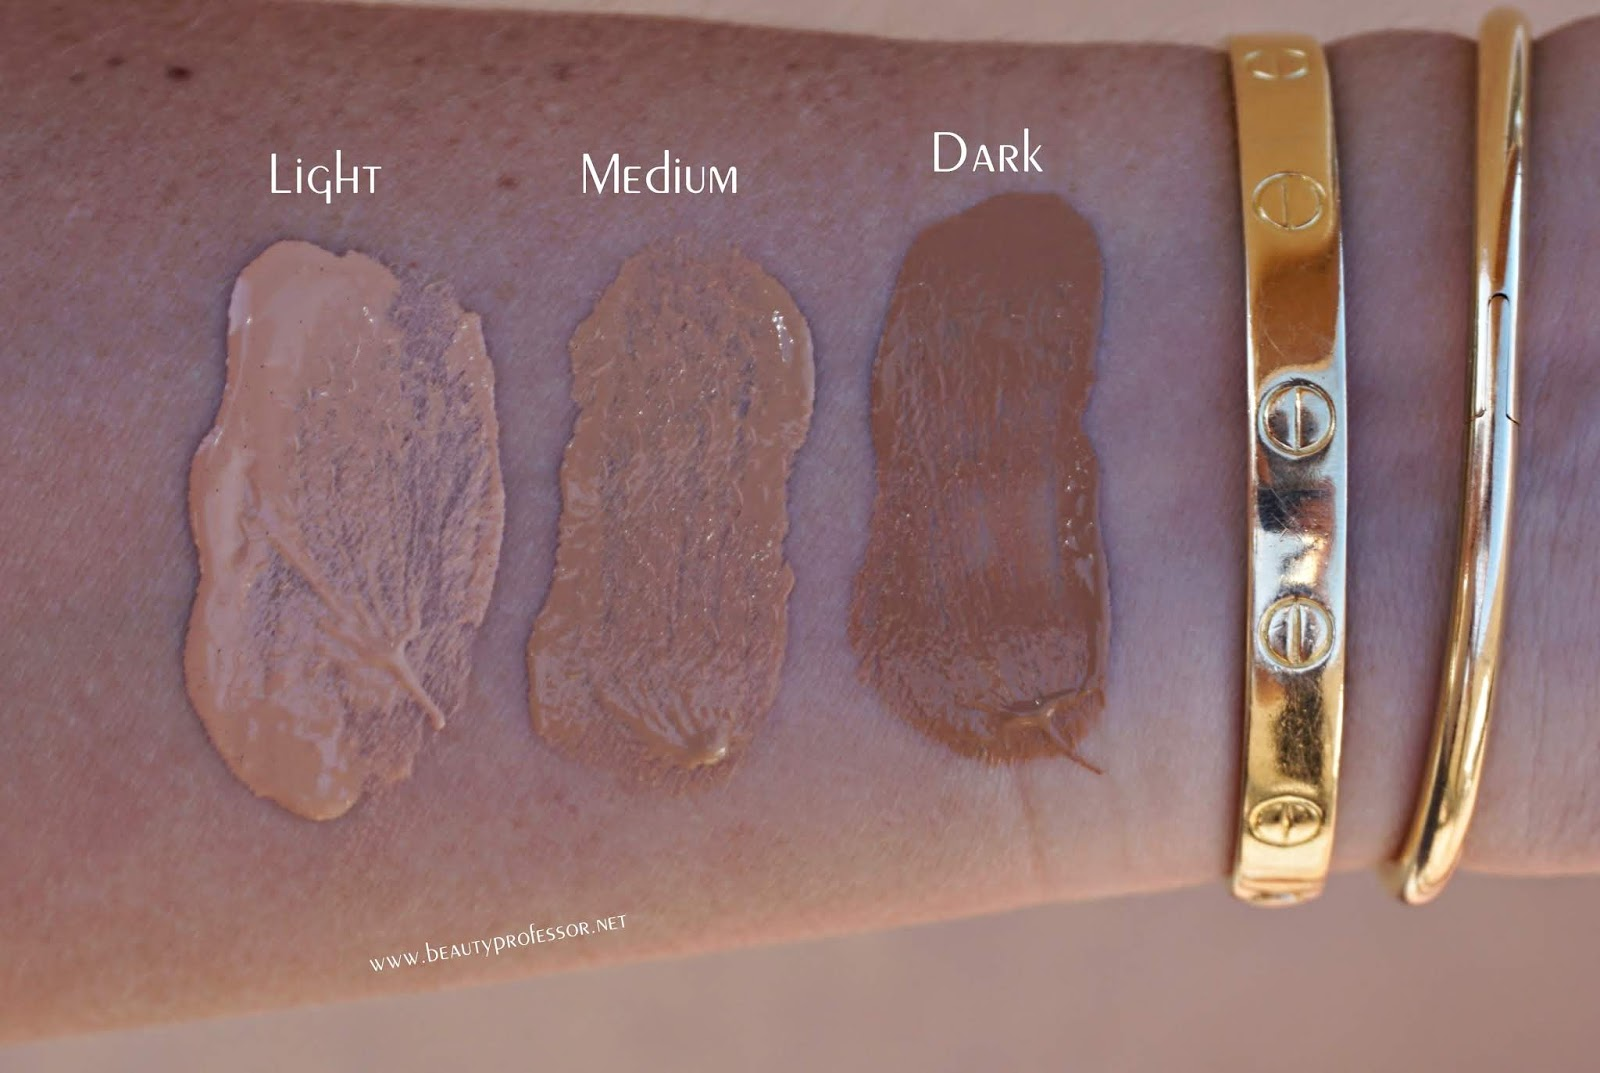 omorovicza complexion perfector swatches light medium dark